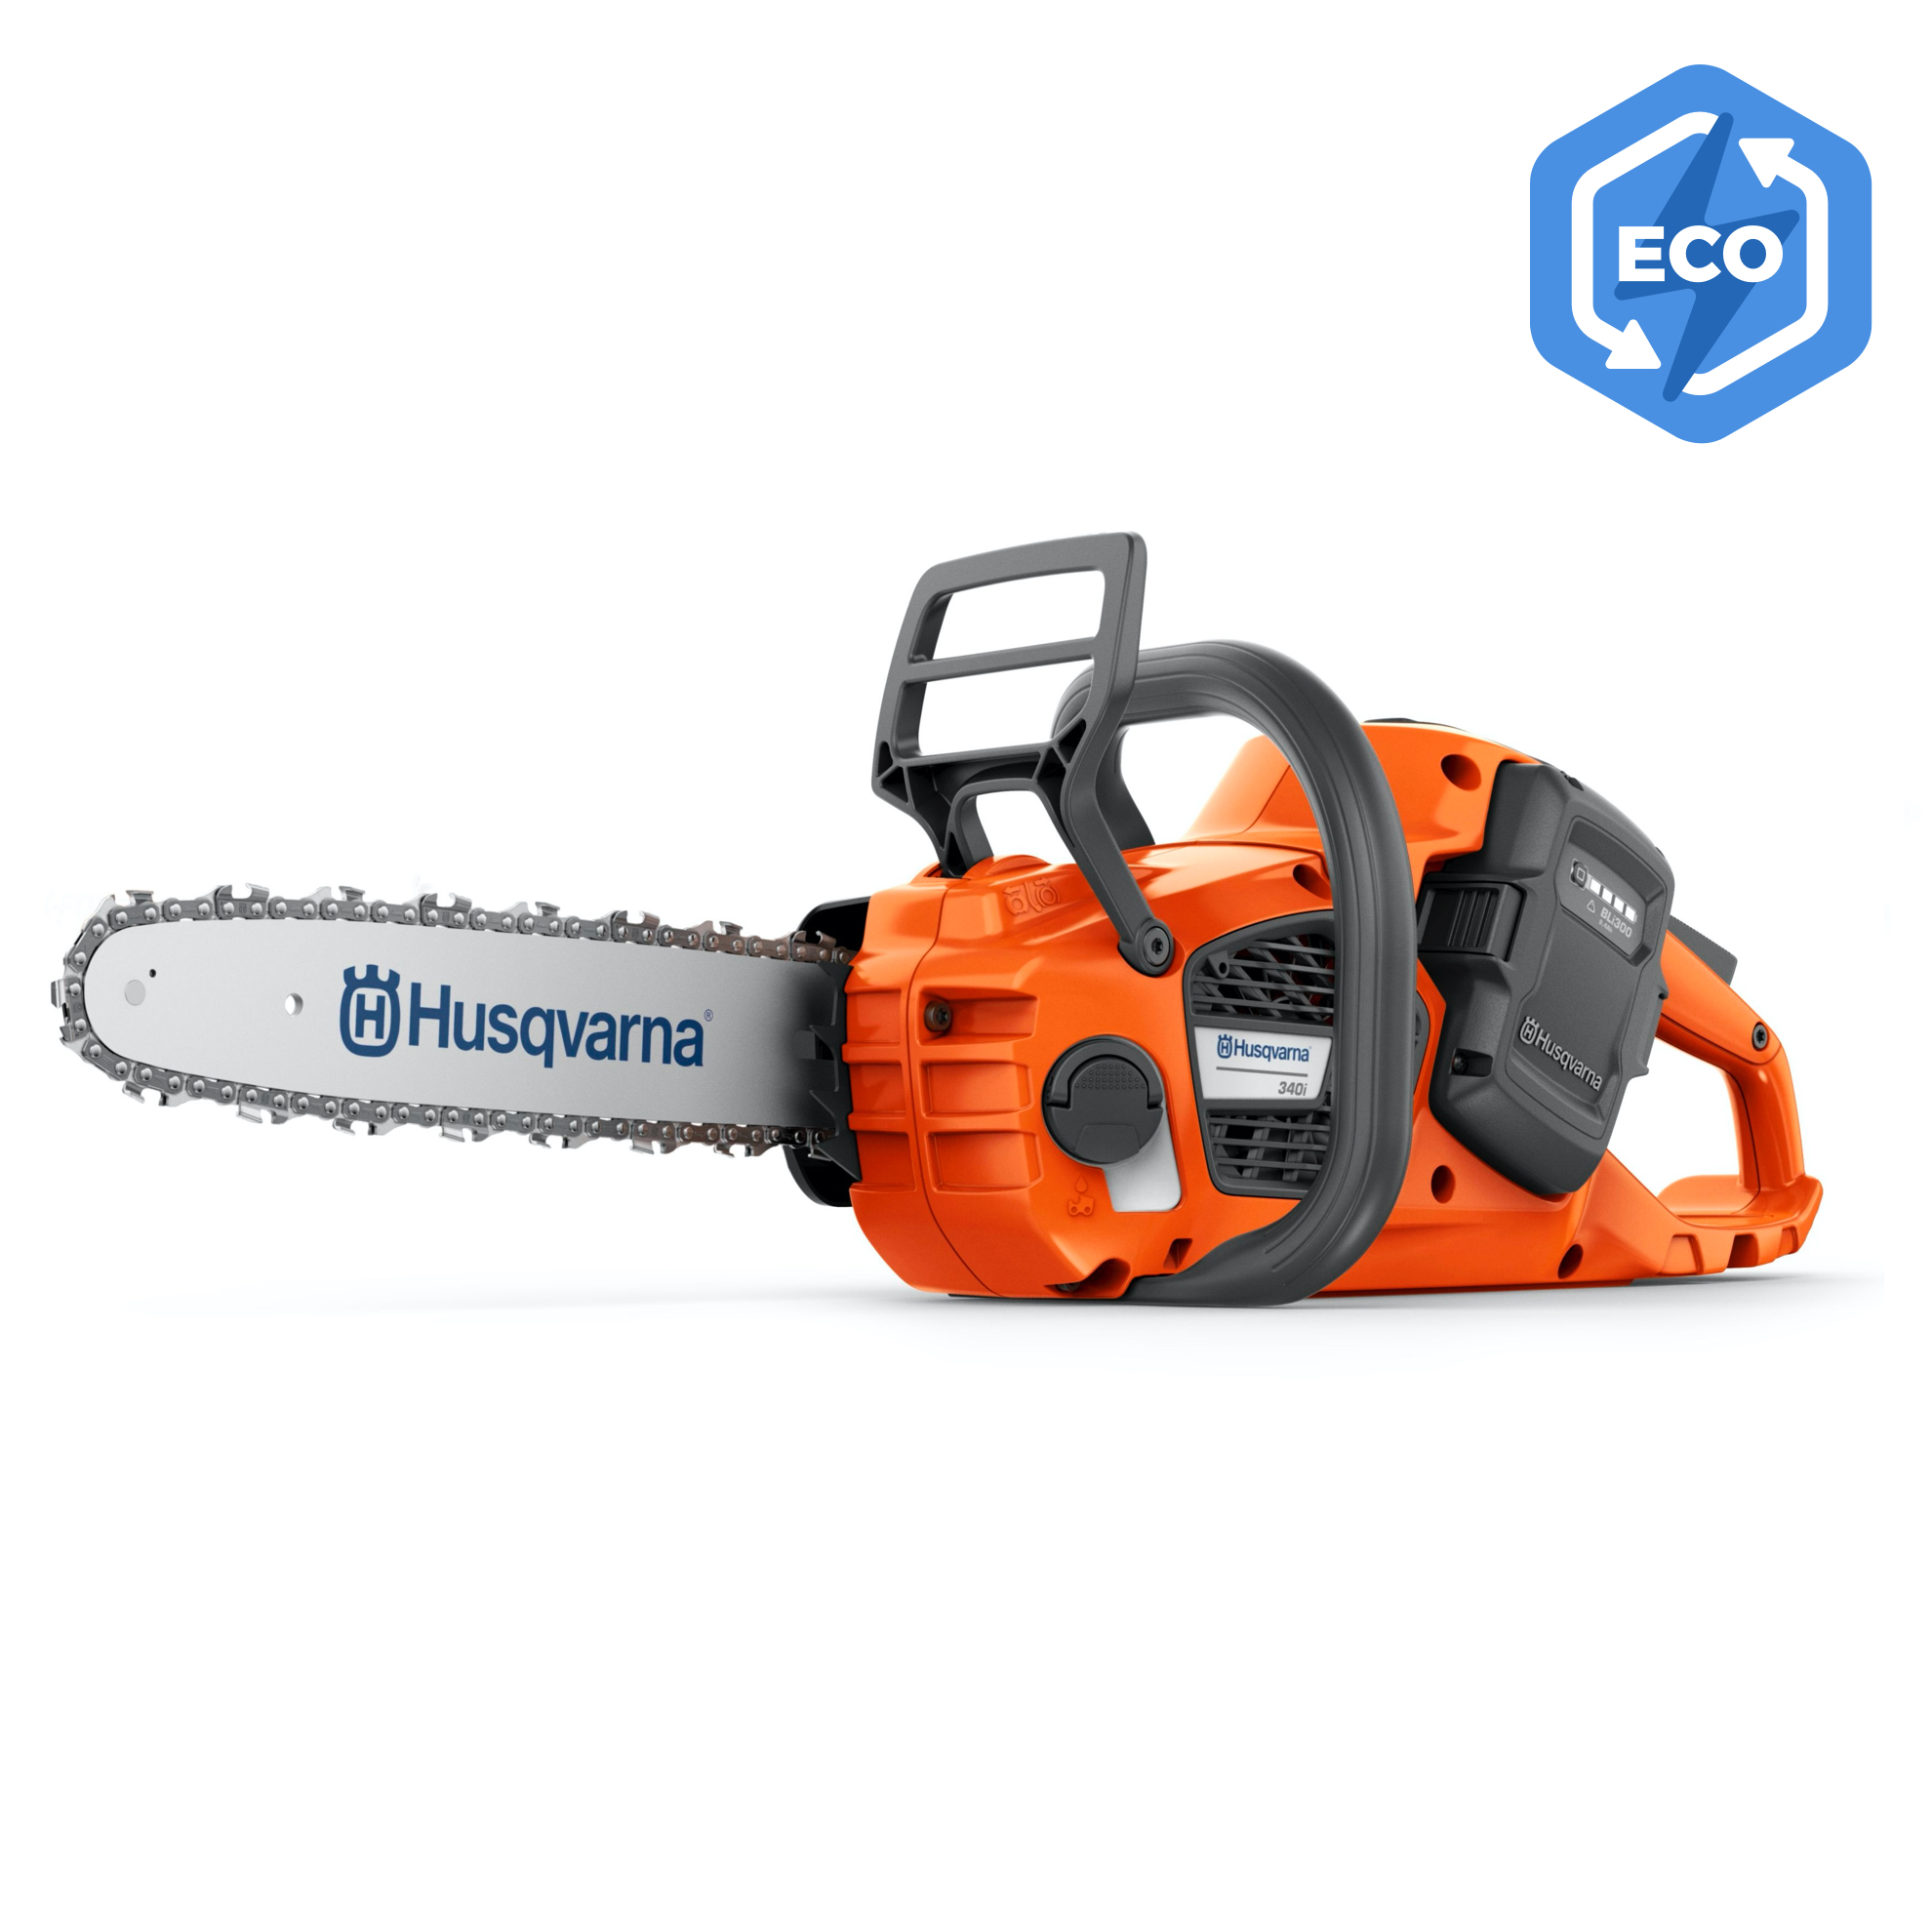 Husqvarna 340i Battery-powered Chainsaw